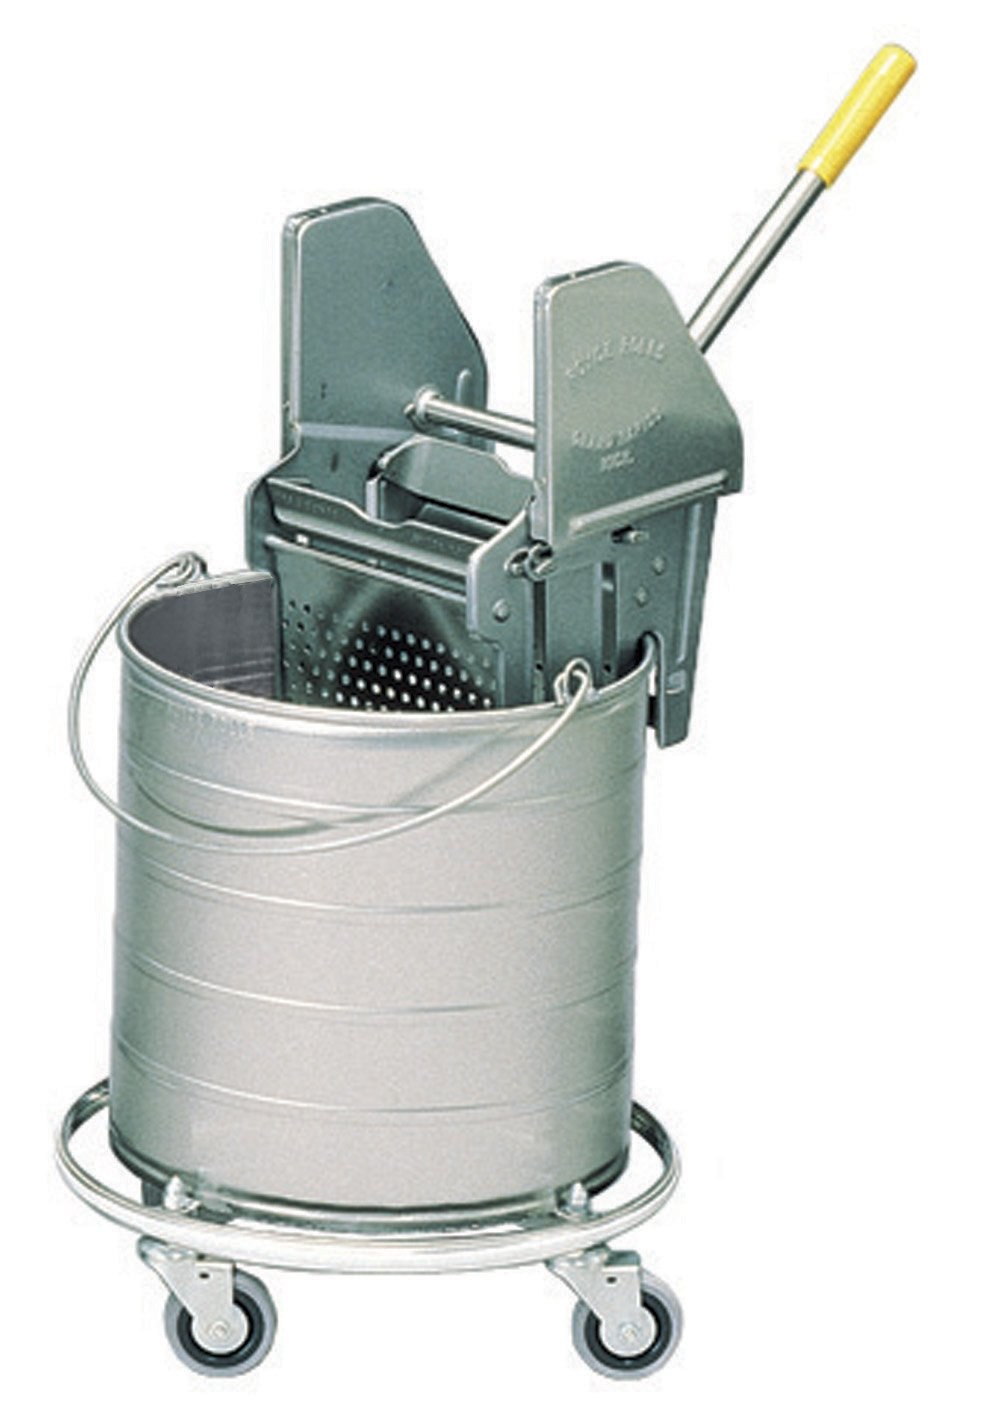 Royce Rolls Stainless Steel 8-Gallon Round Mop Bucket and 16-24 oz. Mop Wringer Combo on 3'' Casters - #428